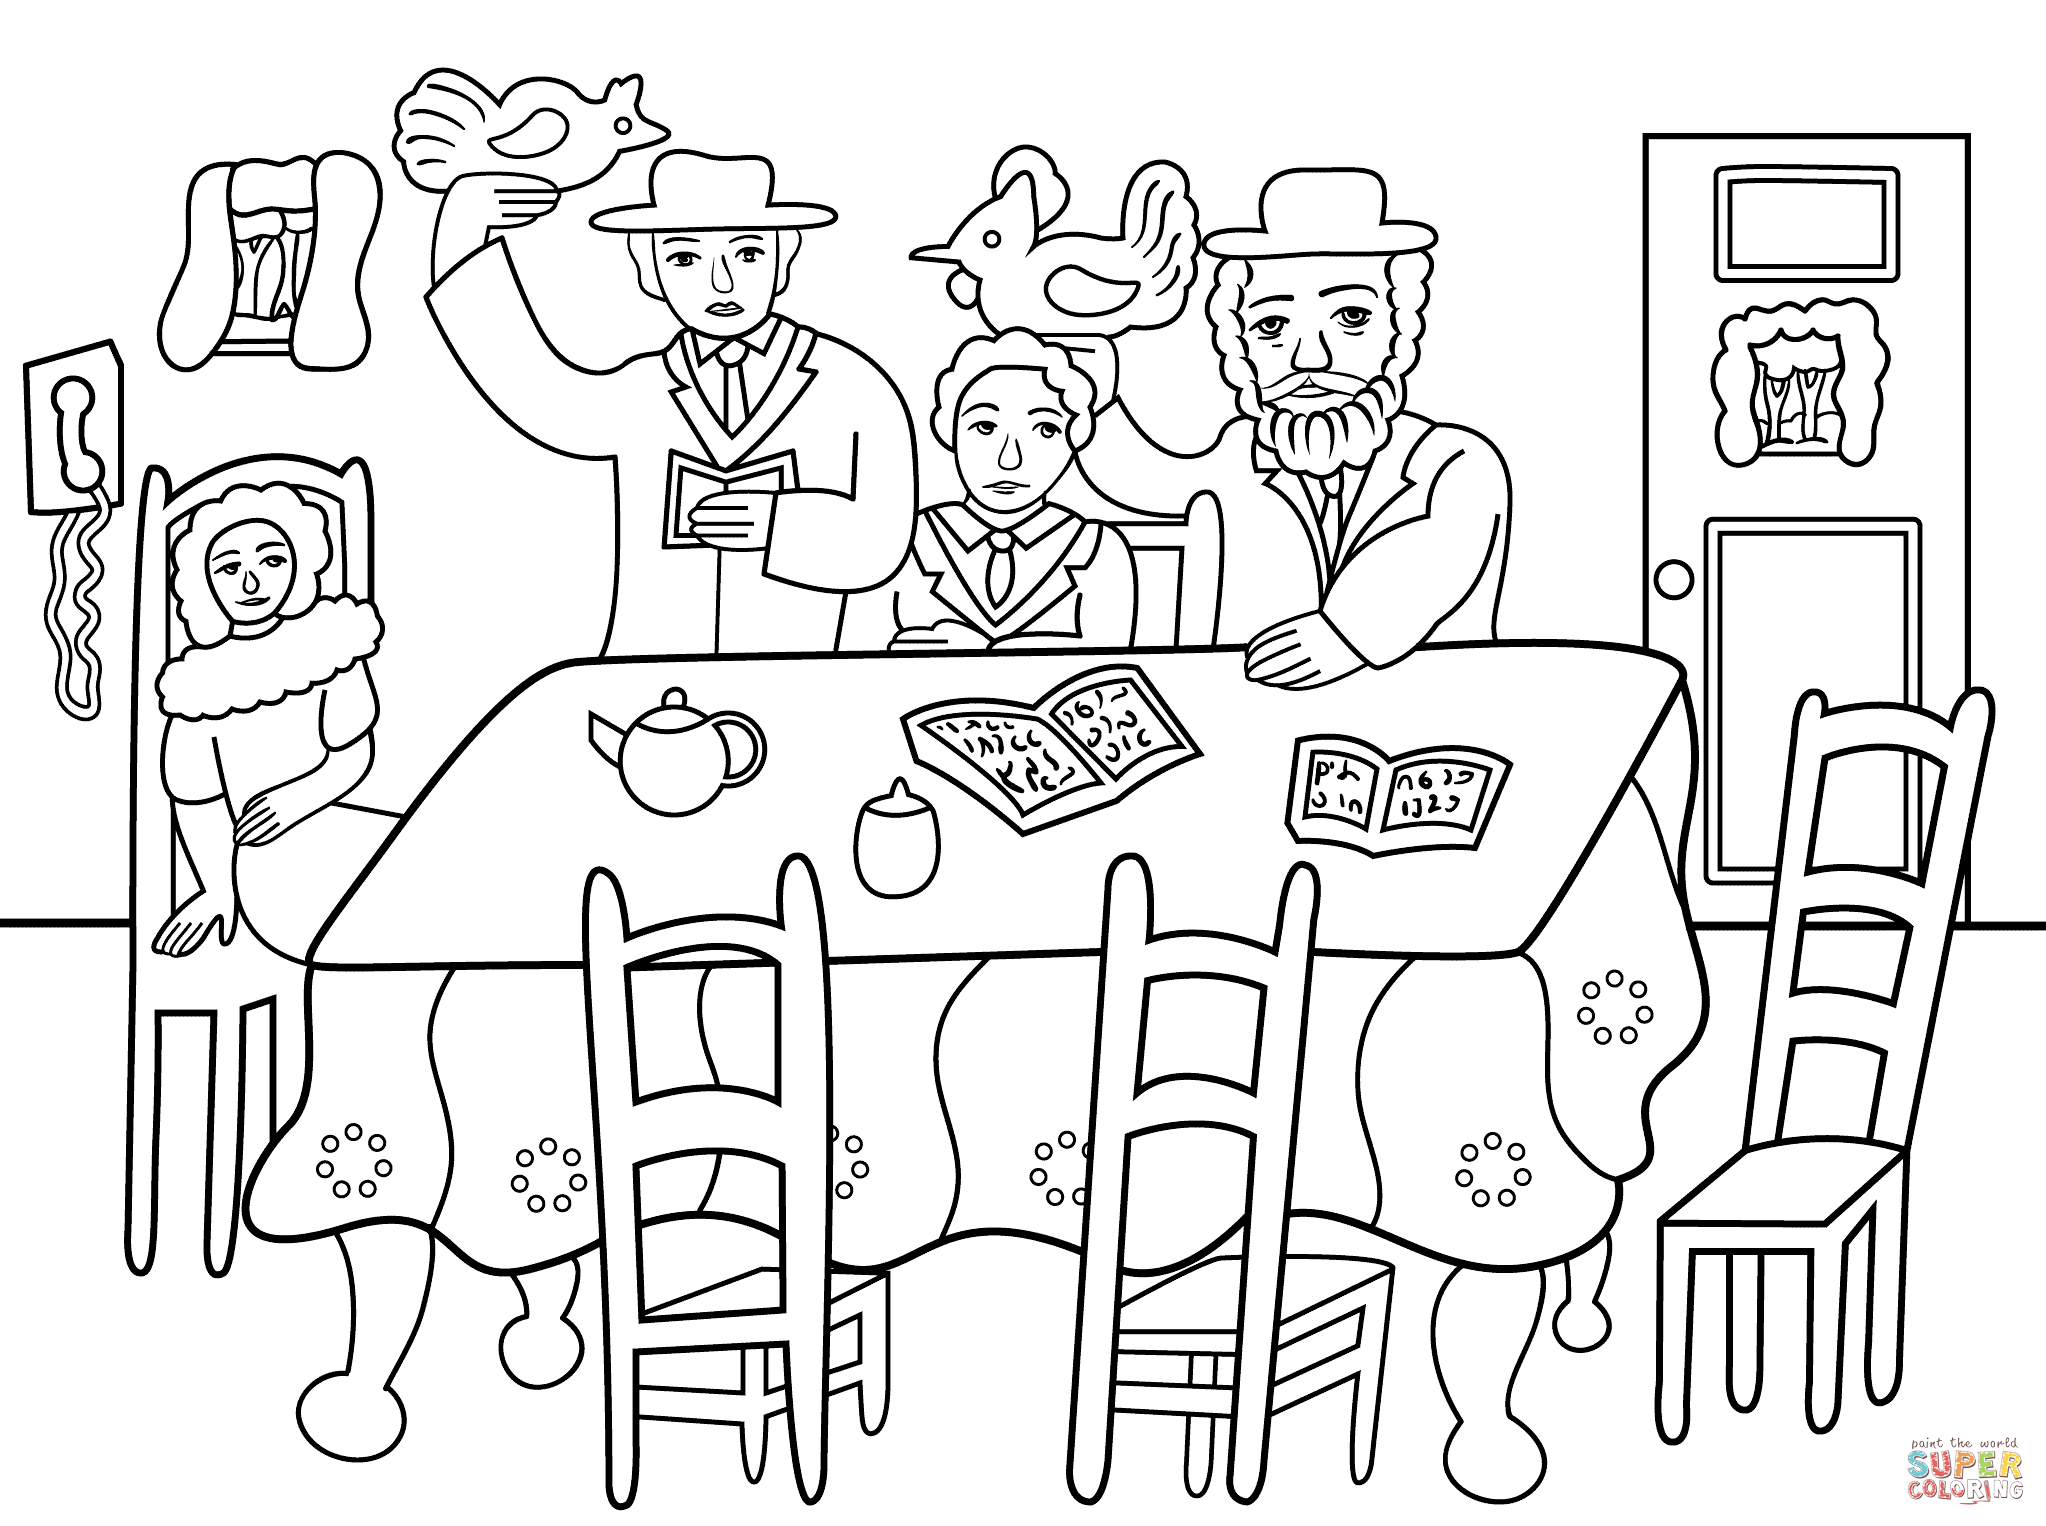 Yom Kippur Coloring Pages Collection | Free Coloring Sheets